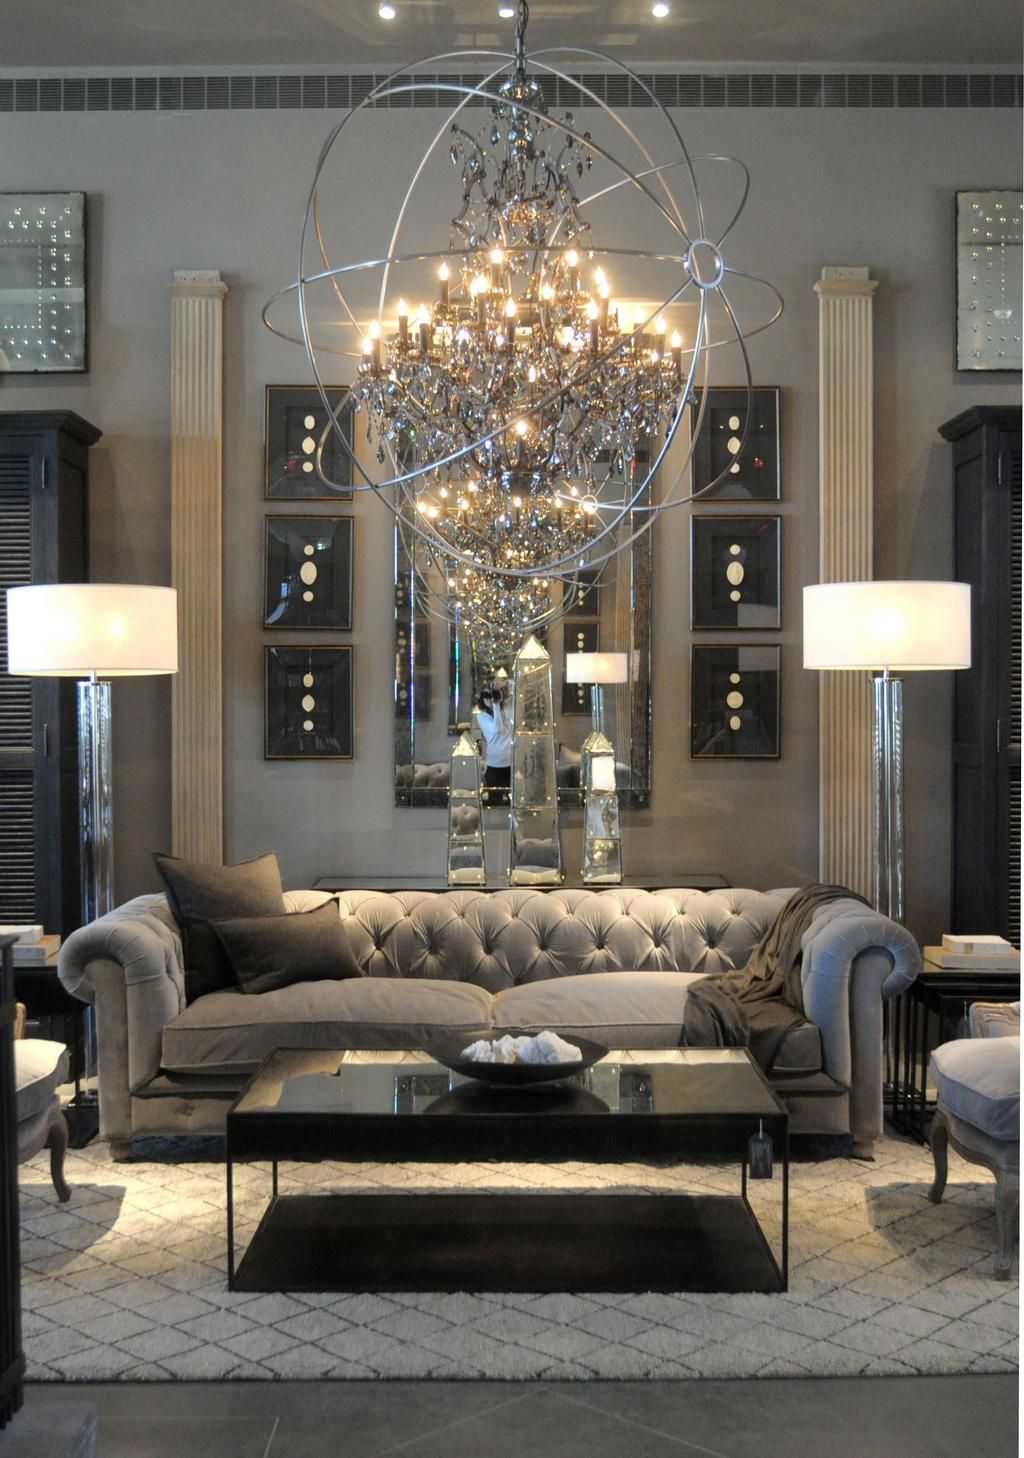 Restoration hardware bedroom furniture - The 70 000 Square Foot Store Is The Company S Largest To